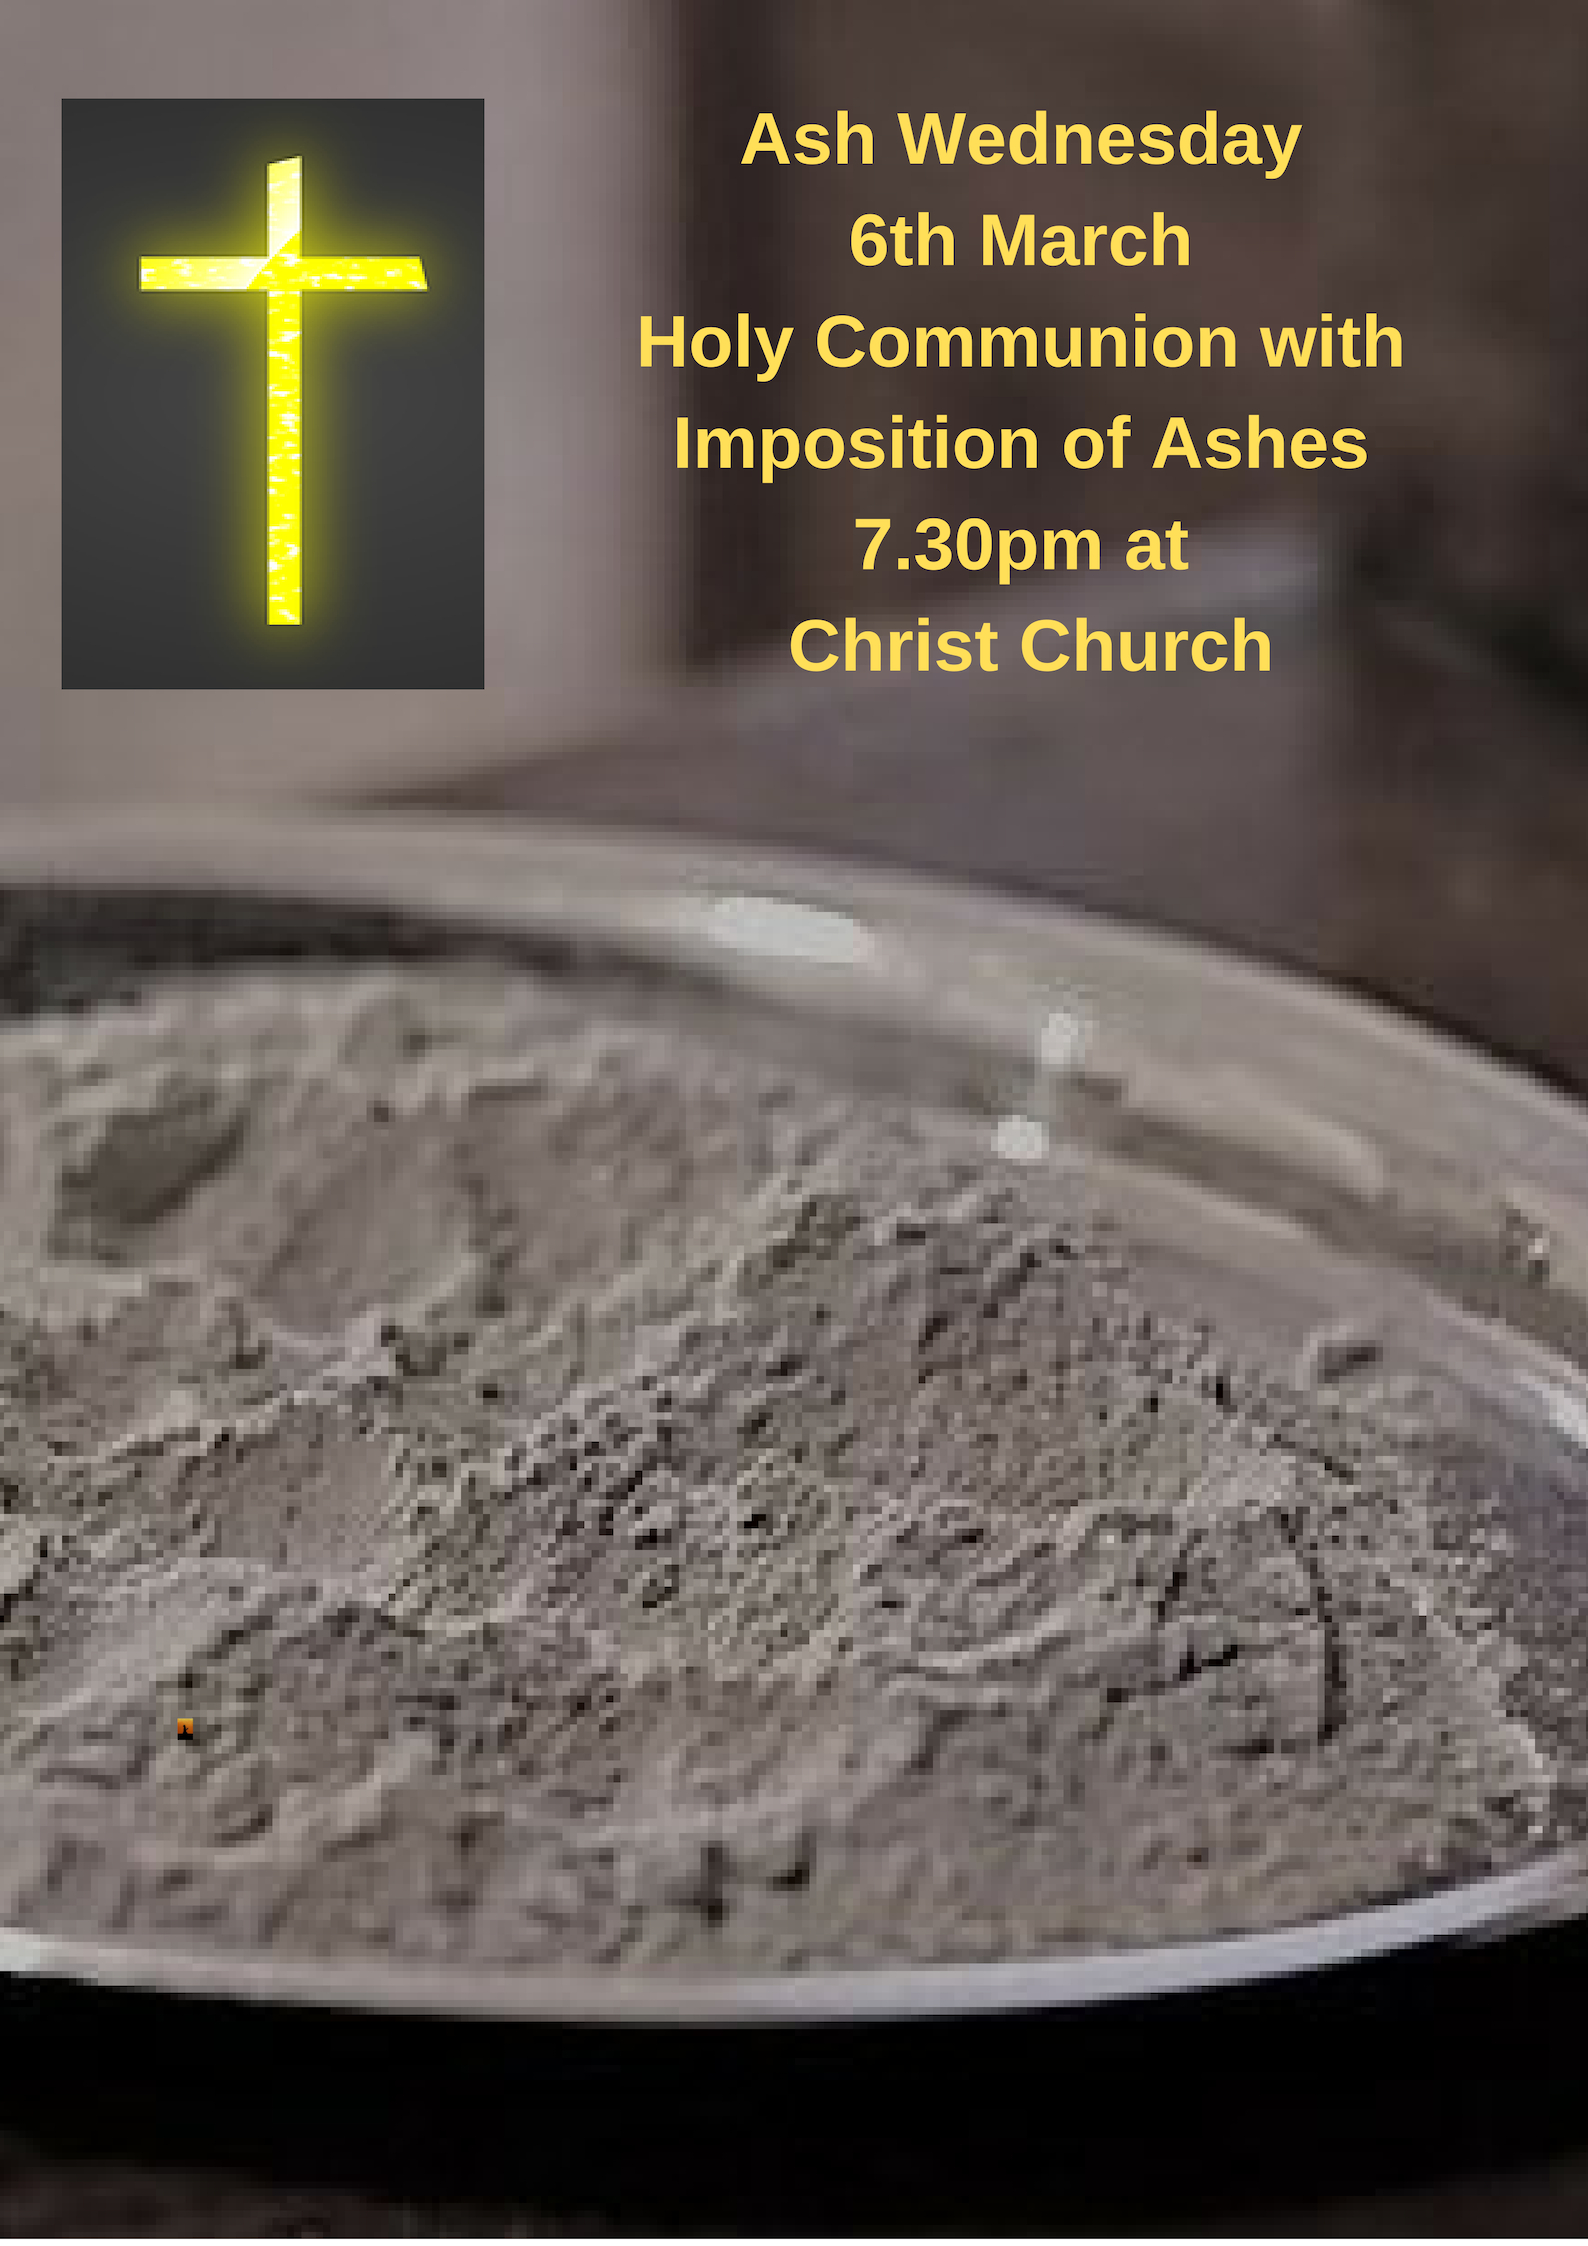 Ash Wednesday with Imposition of Ashes